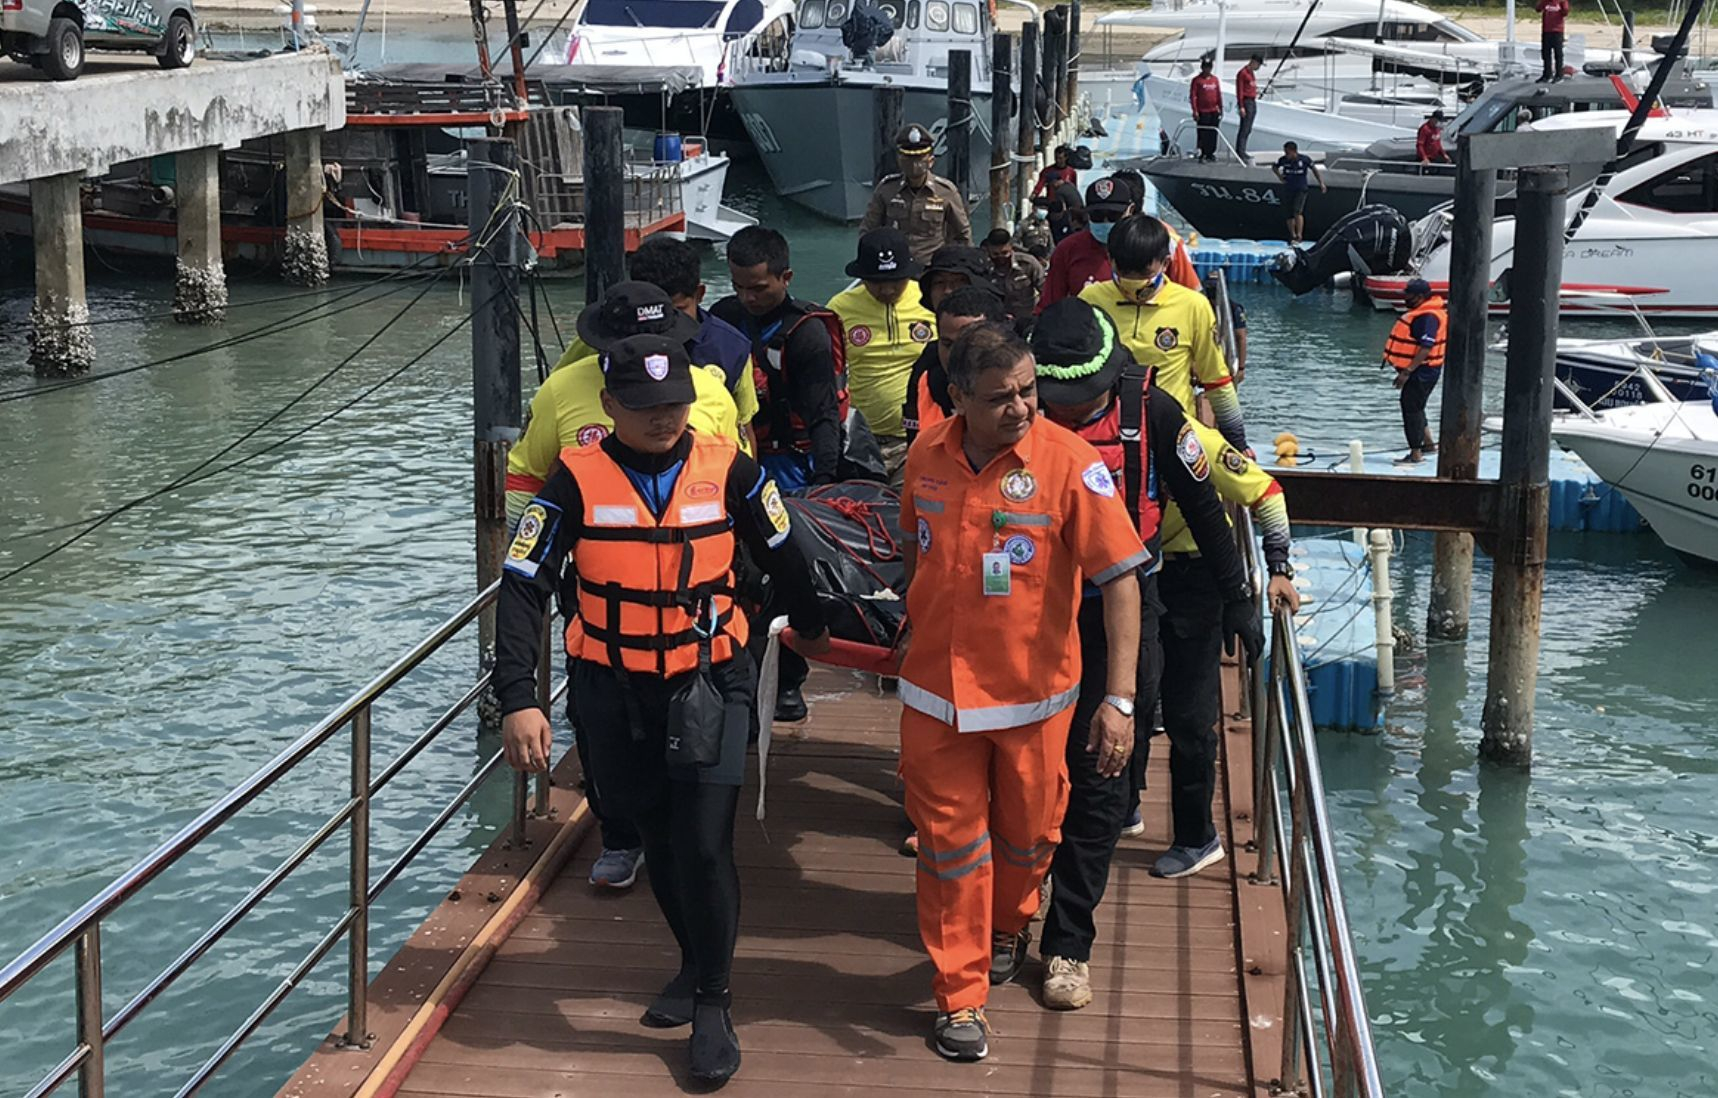 1 more body found, 3 remain missing. Koh Samui ferry disaster. | Thaiger